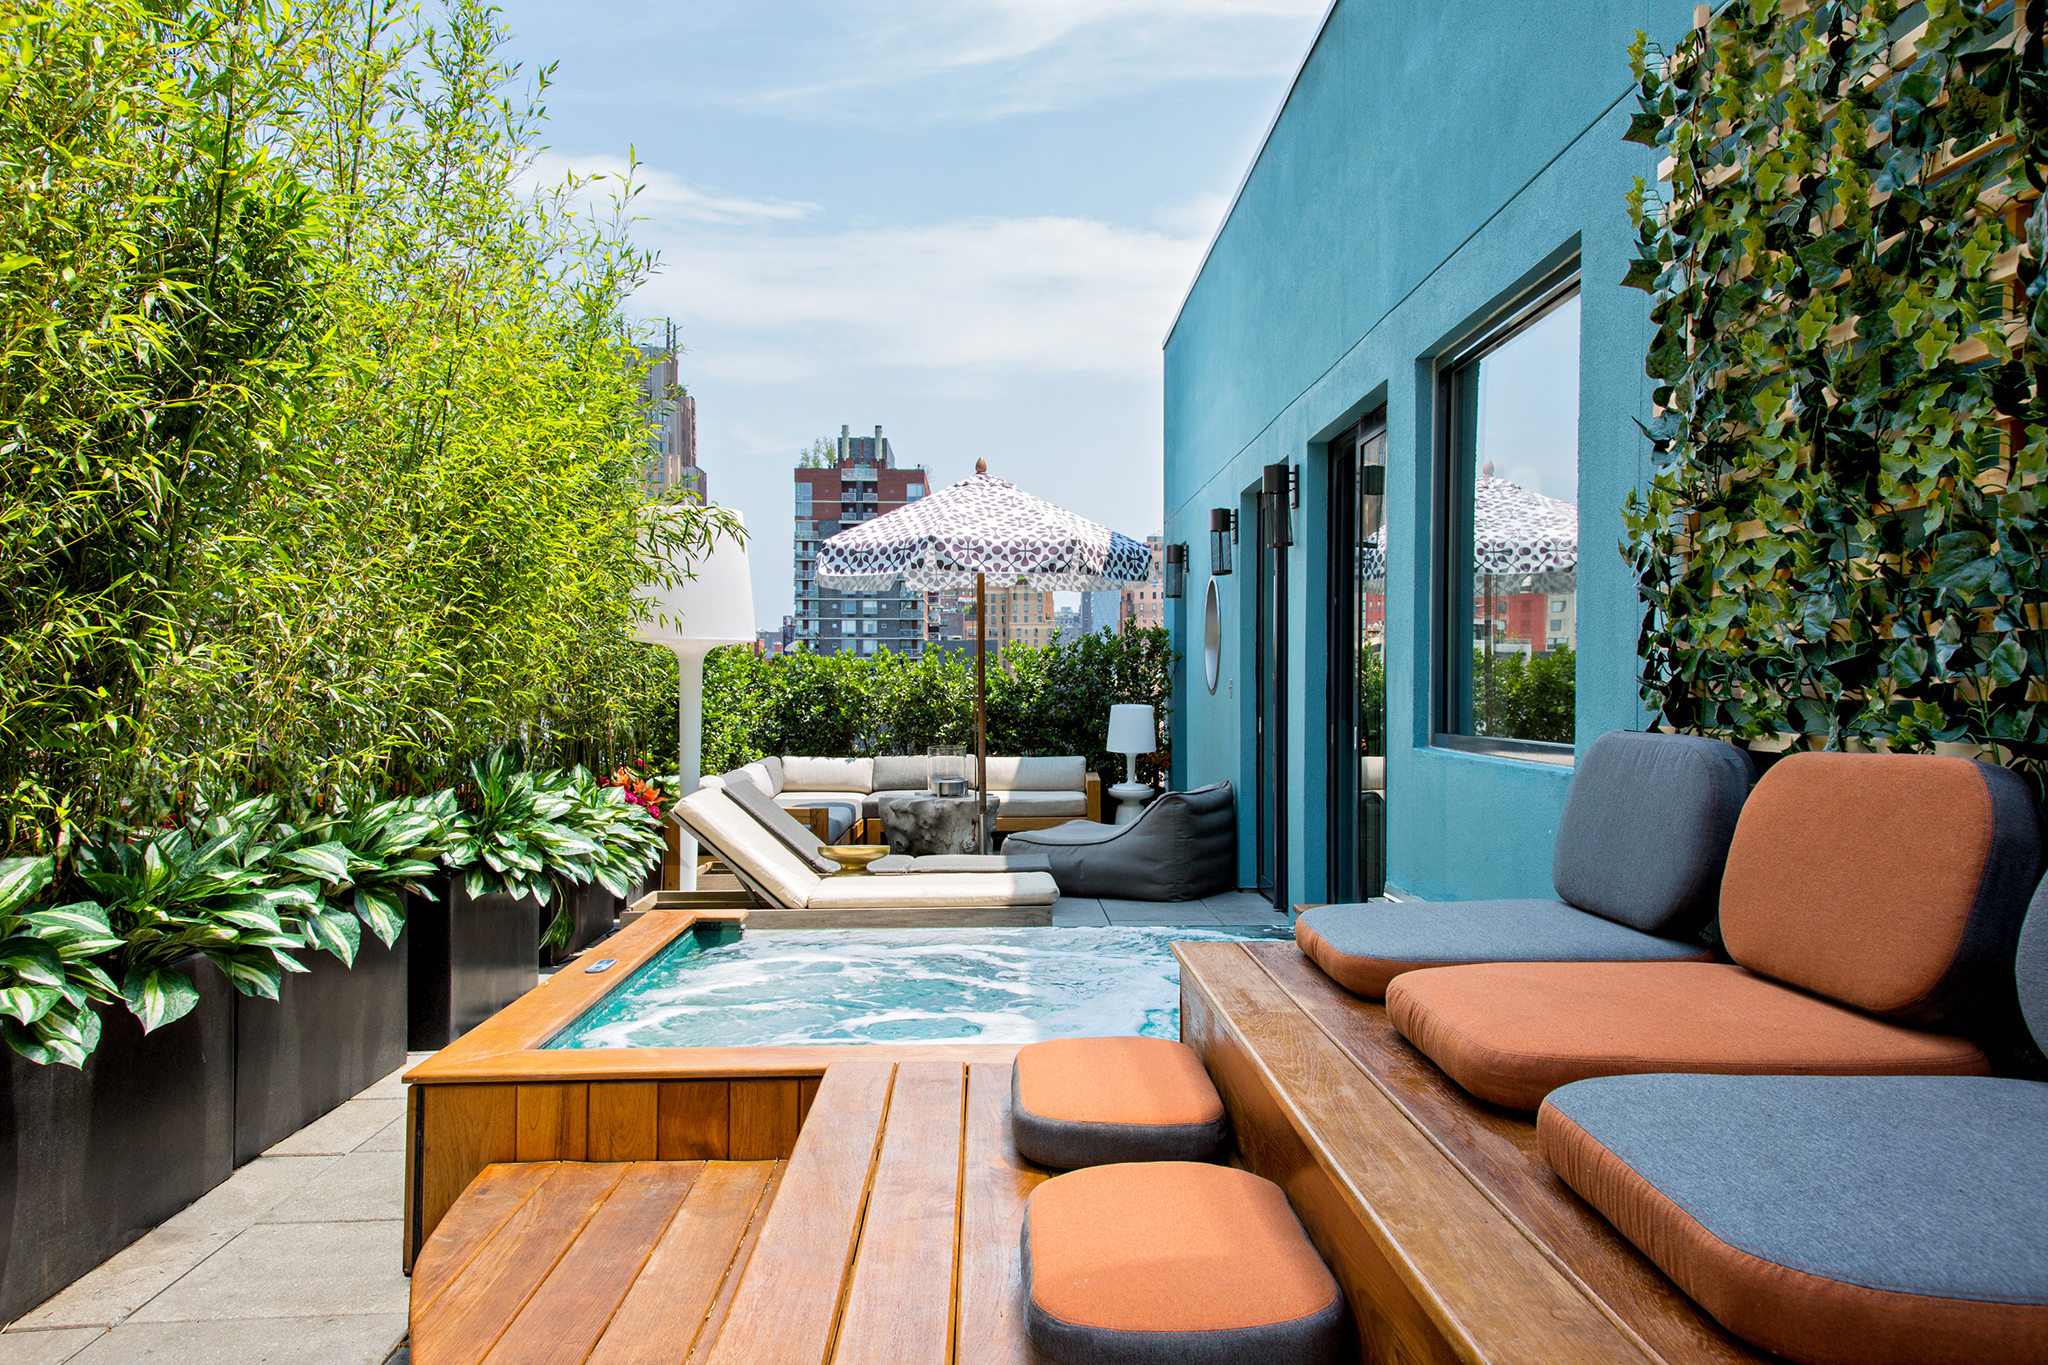 Jacuzzi Pool Hotel 10 Best Nyc Hotels With Jacuzzis In Room For A Relaxing Trip